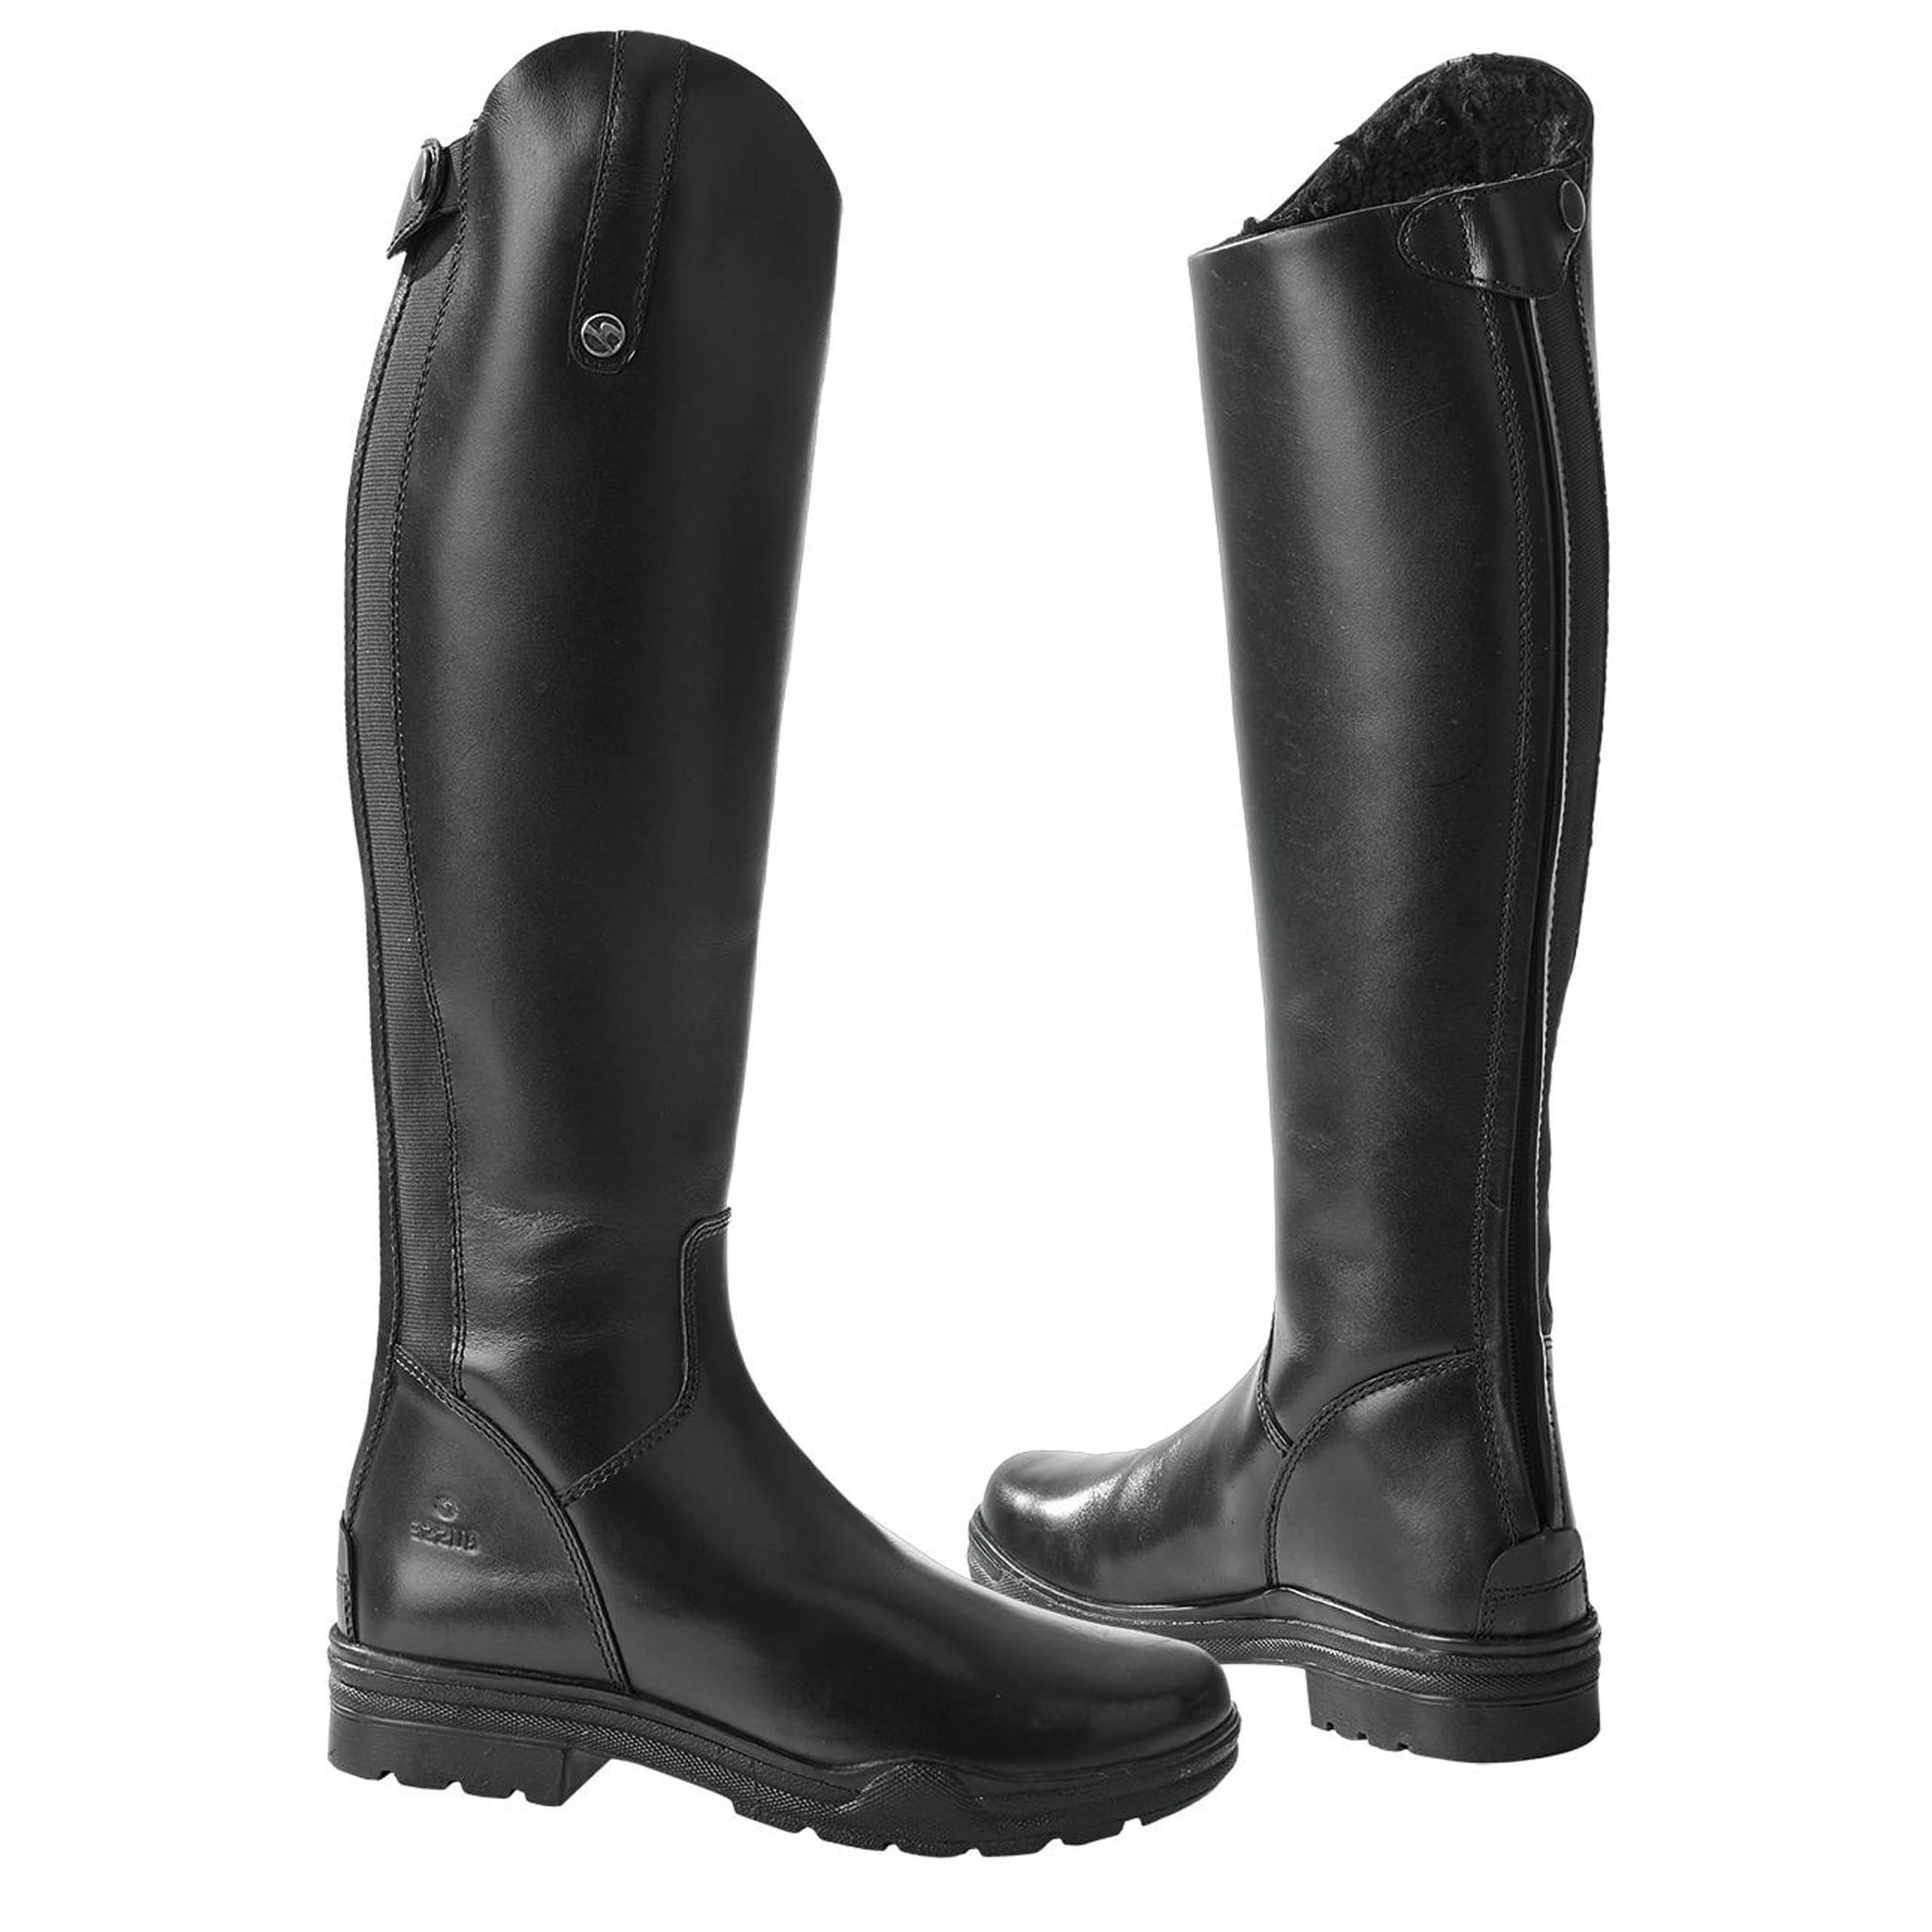 Busse Oslo Winter Riding Boots 728015